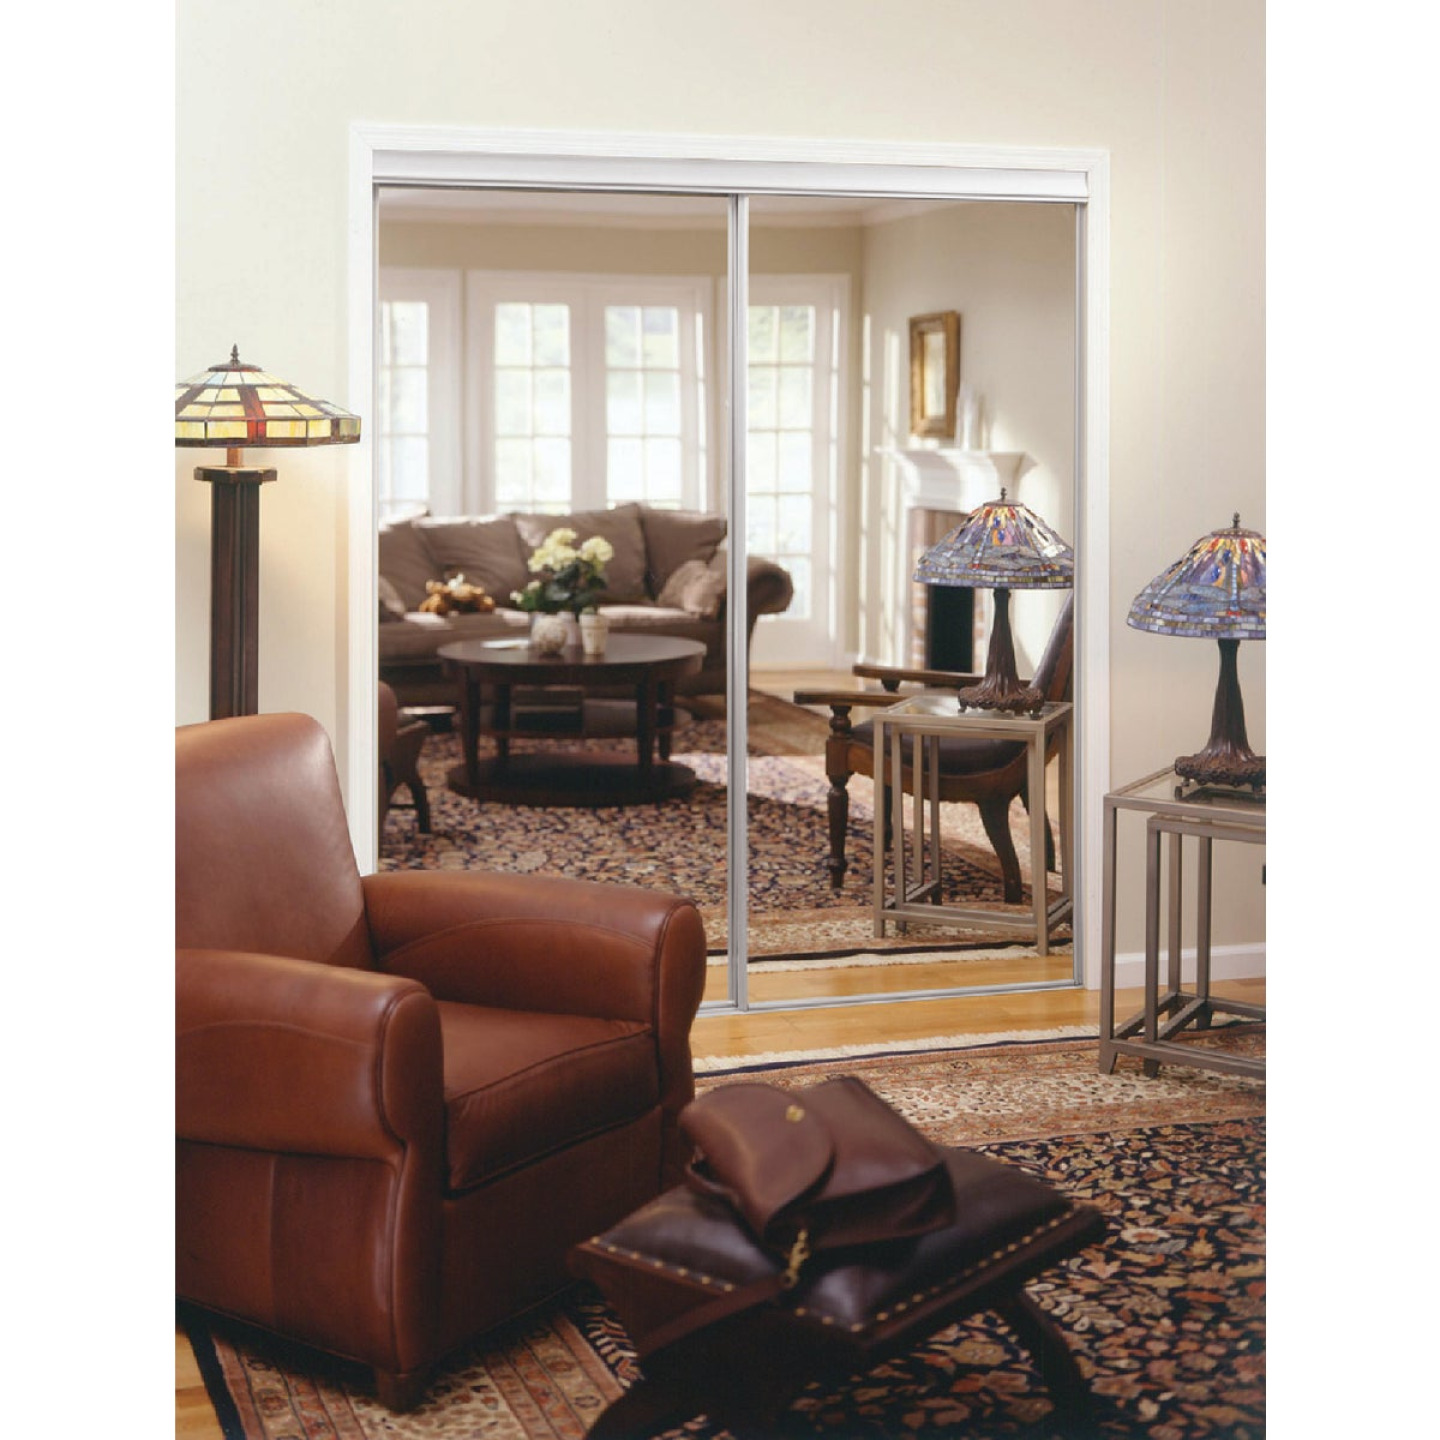 Erias 4050 Series 47 In. W. x 80-1/2 In. H. Bright White Top Hung Mirrored Bypass Door Image 1